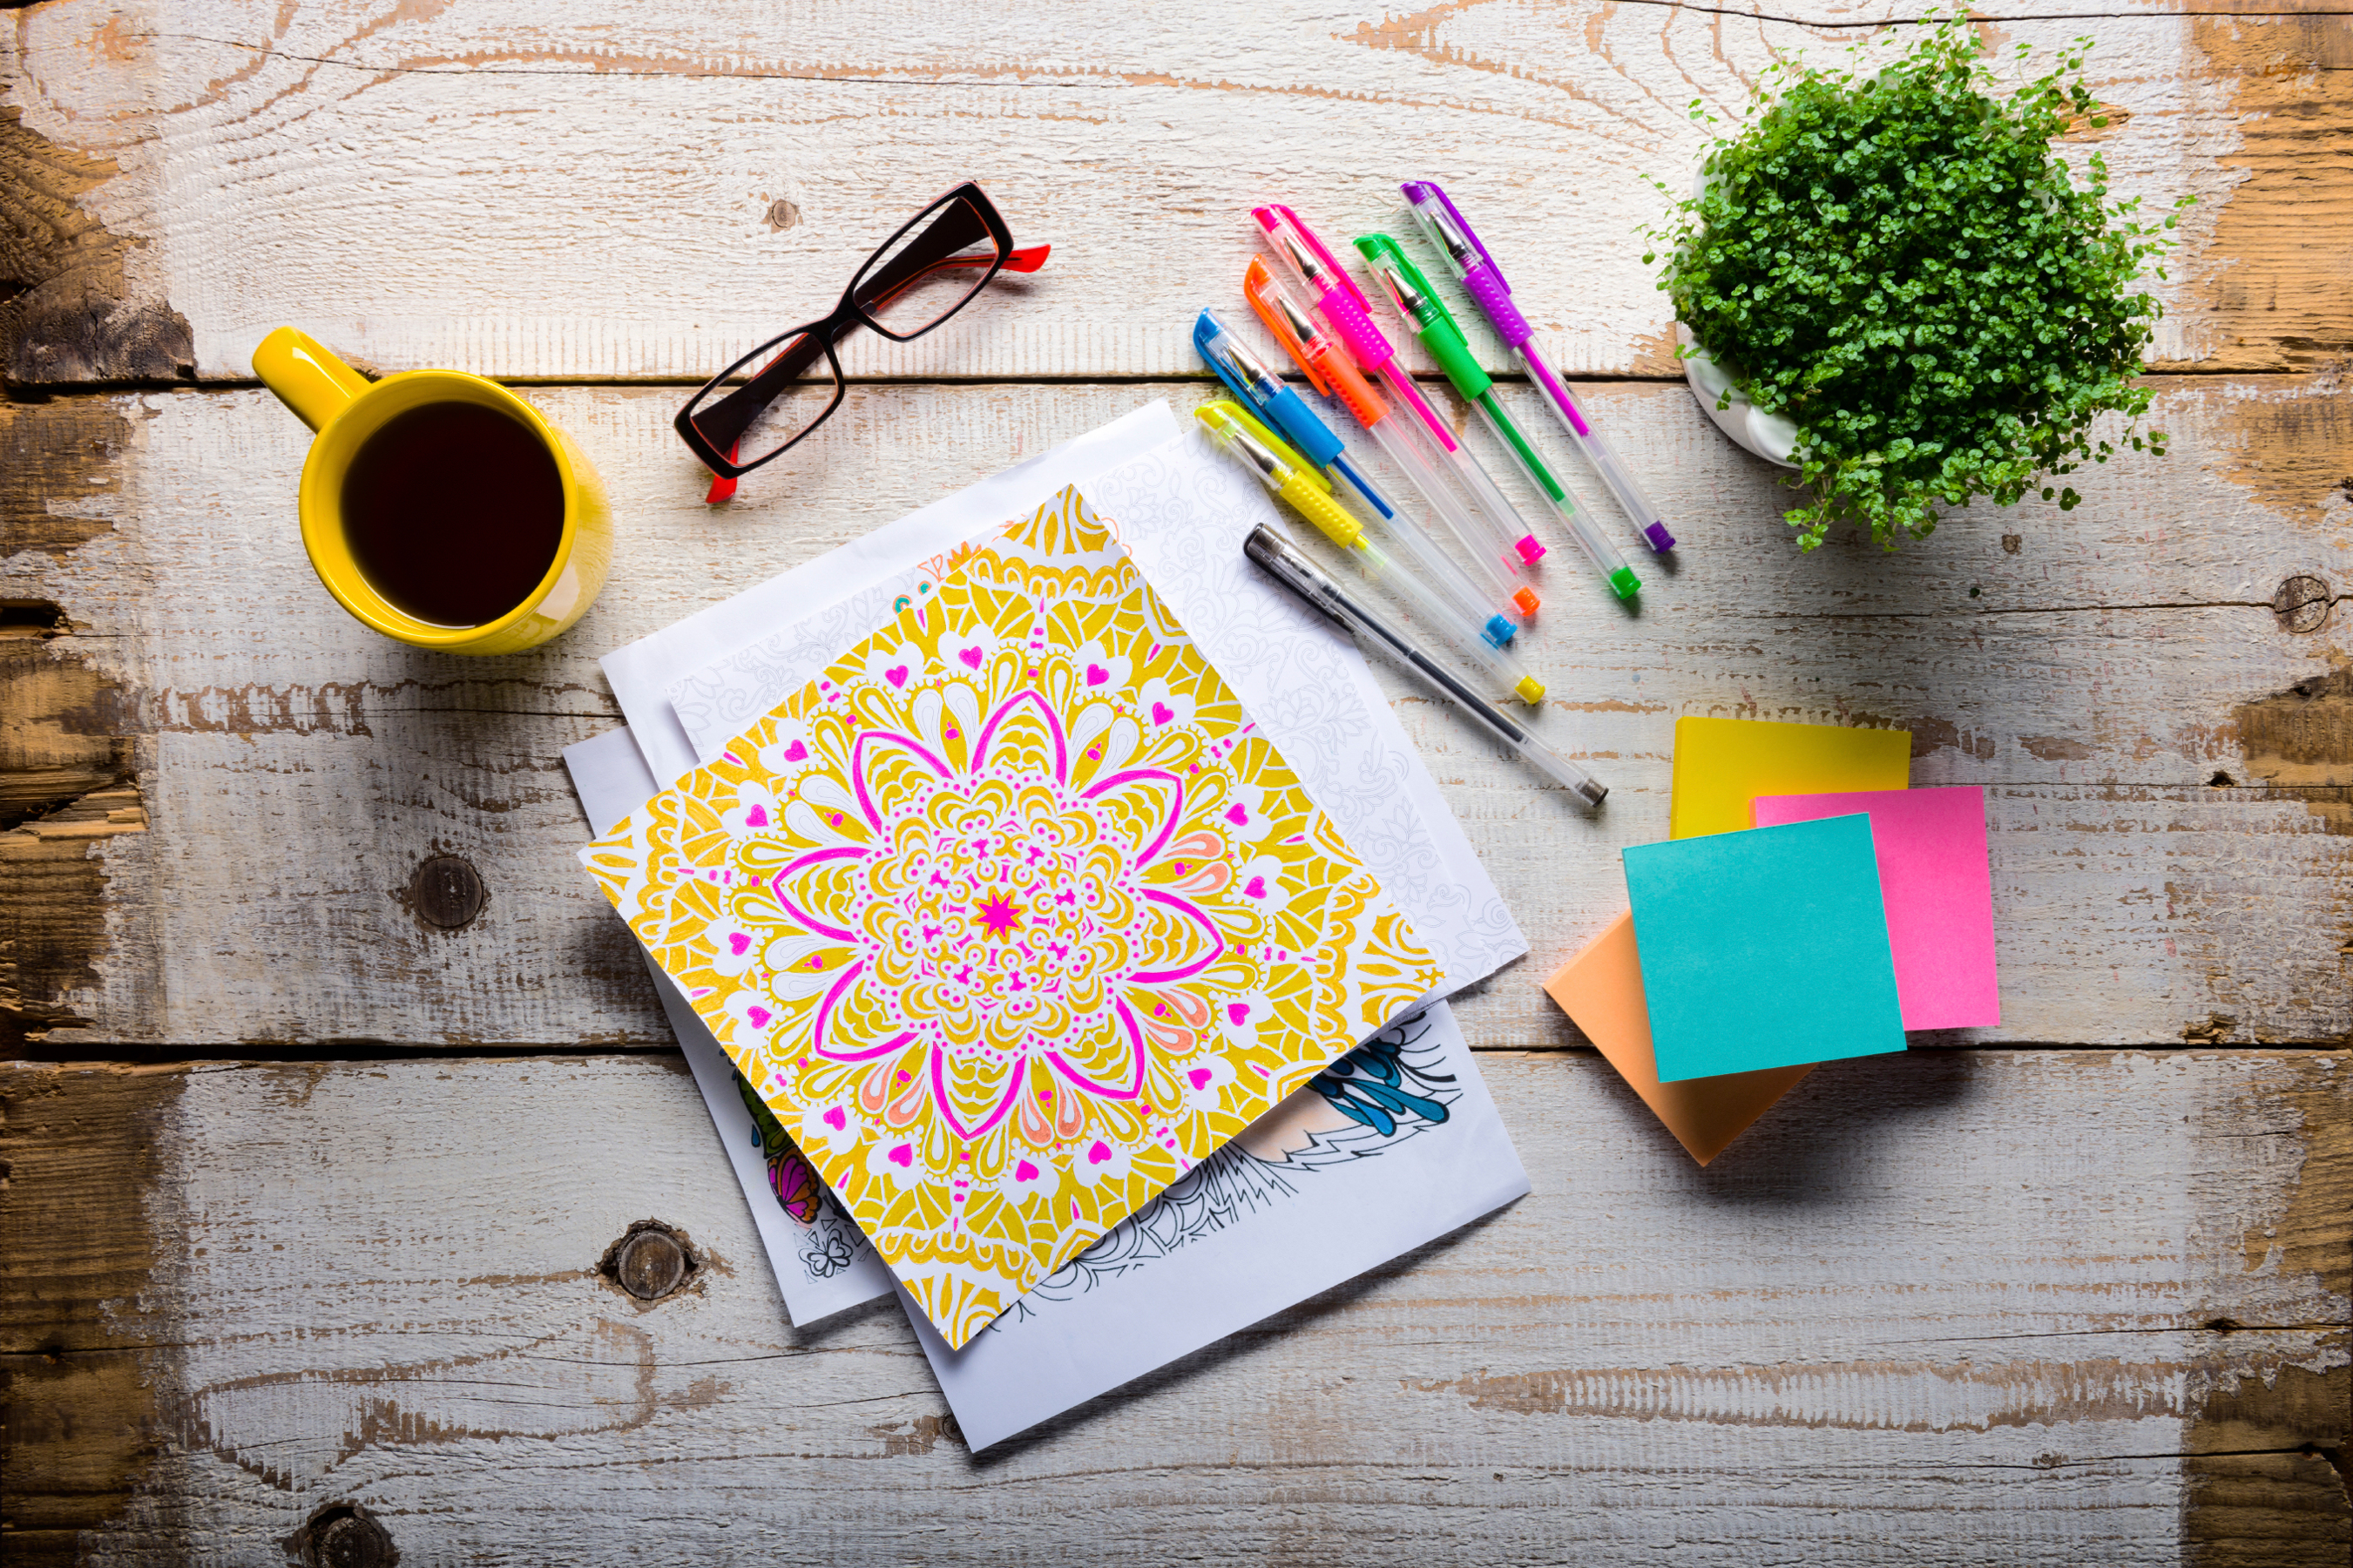 Adult Coloring Books Can Reduce Stress